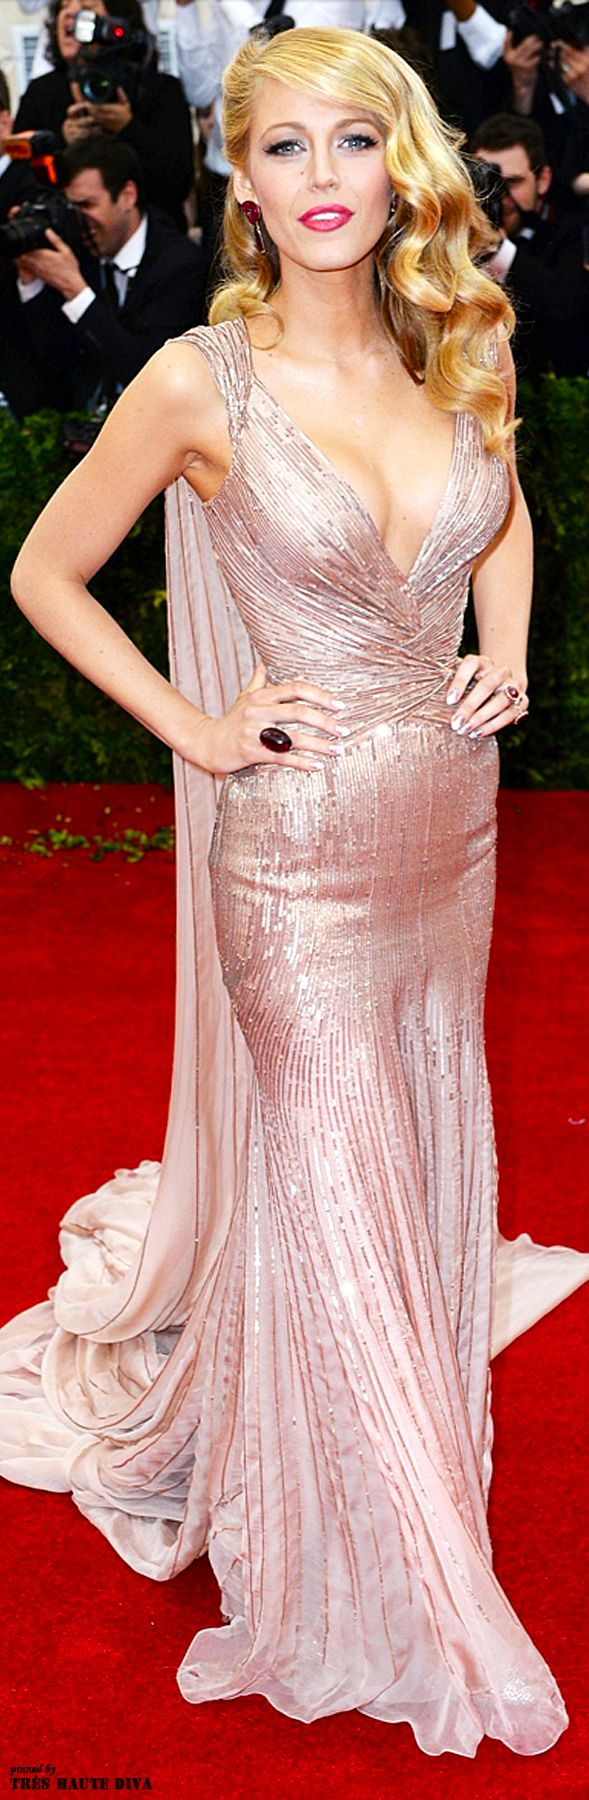 Blake Lively wore a custom-made Gucci Premiere gown to the MET Gala 2014   The House of Beccaria~